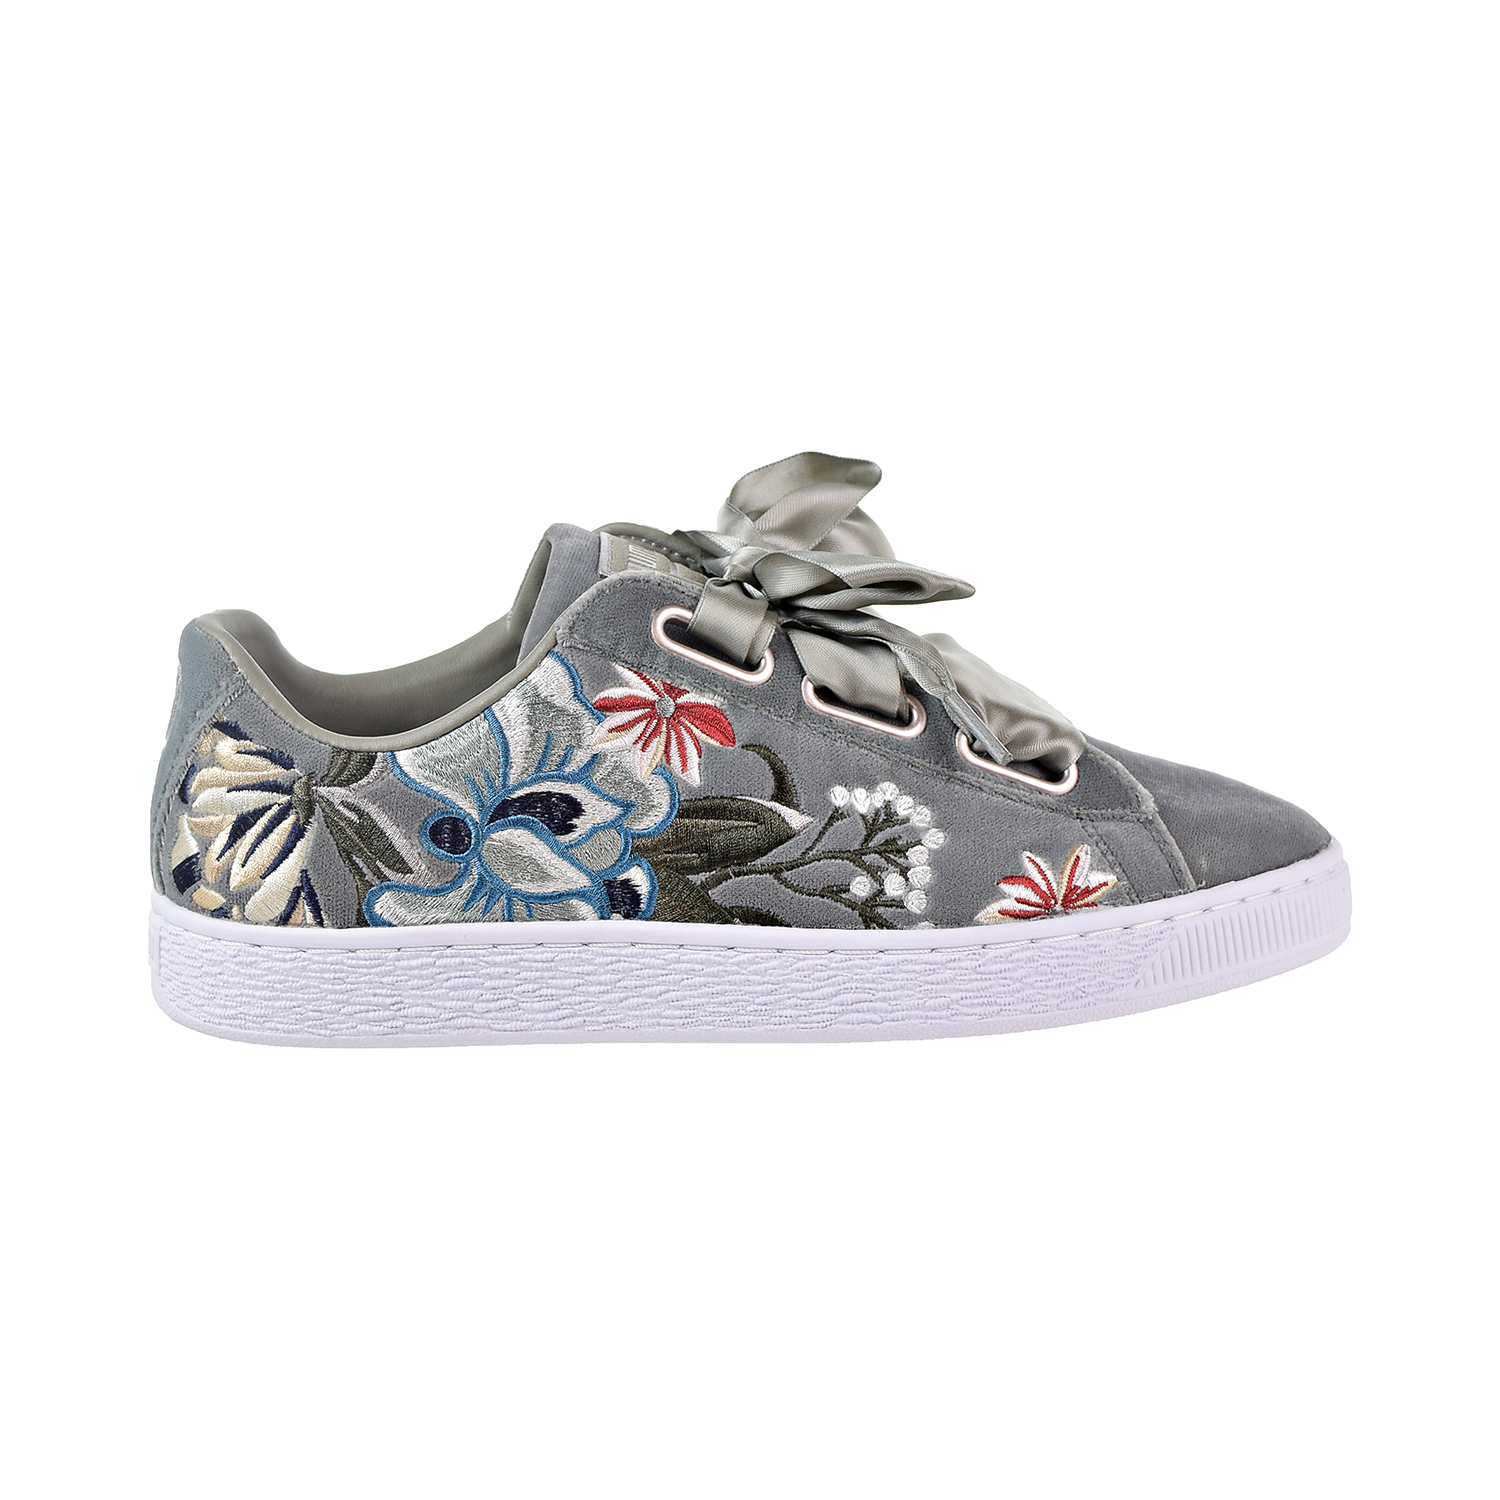 pretty nice a65d0 91a2b Details about Puma Basket Heart Hyper Embroidery Women's Shoes Rock Ridge  366116-03